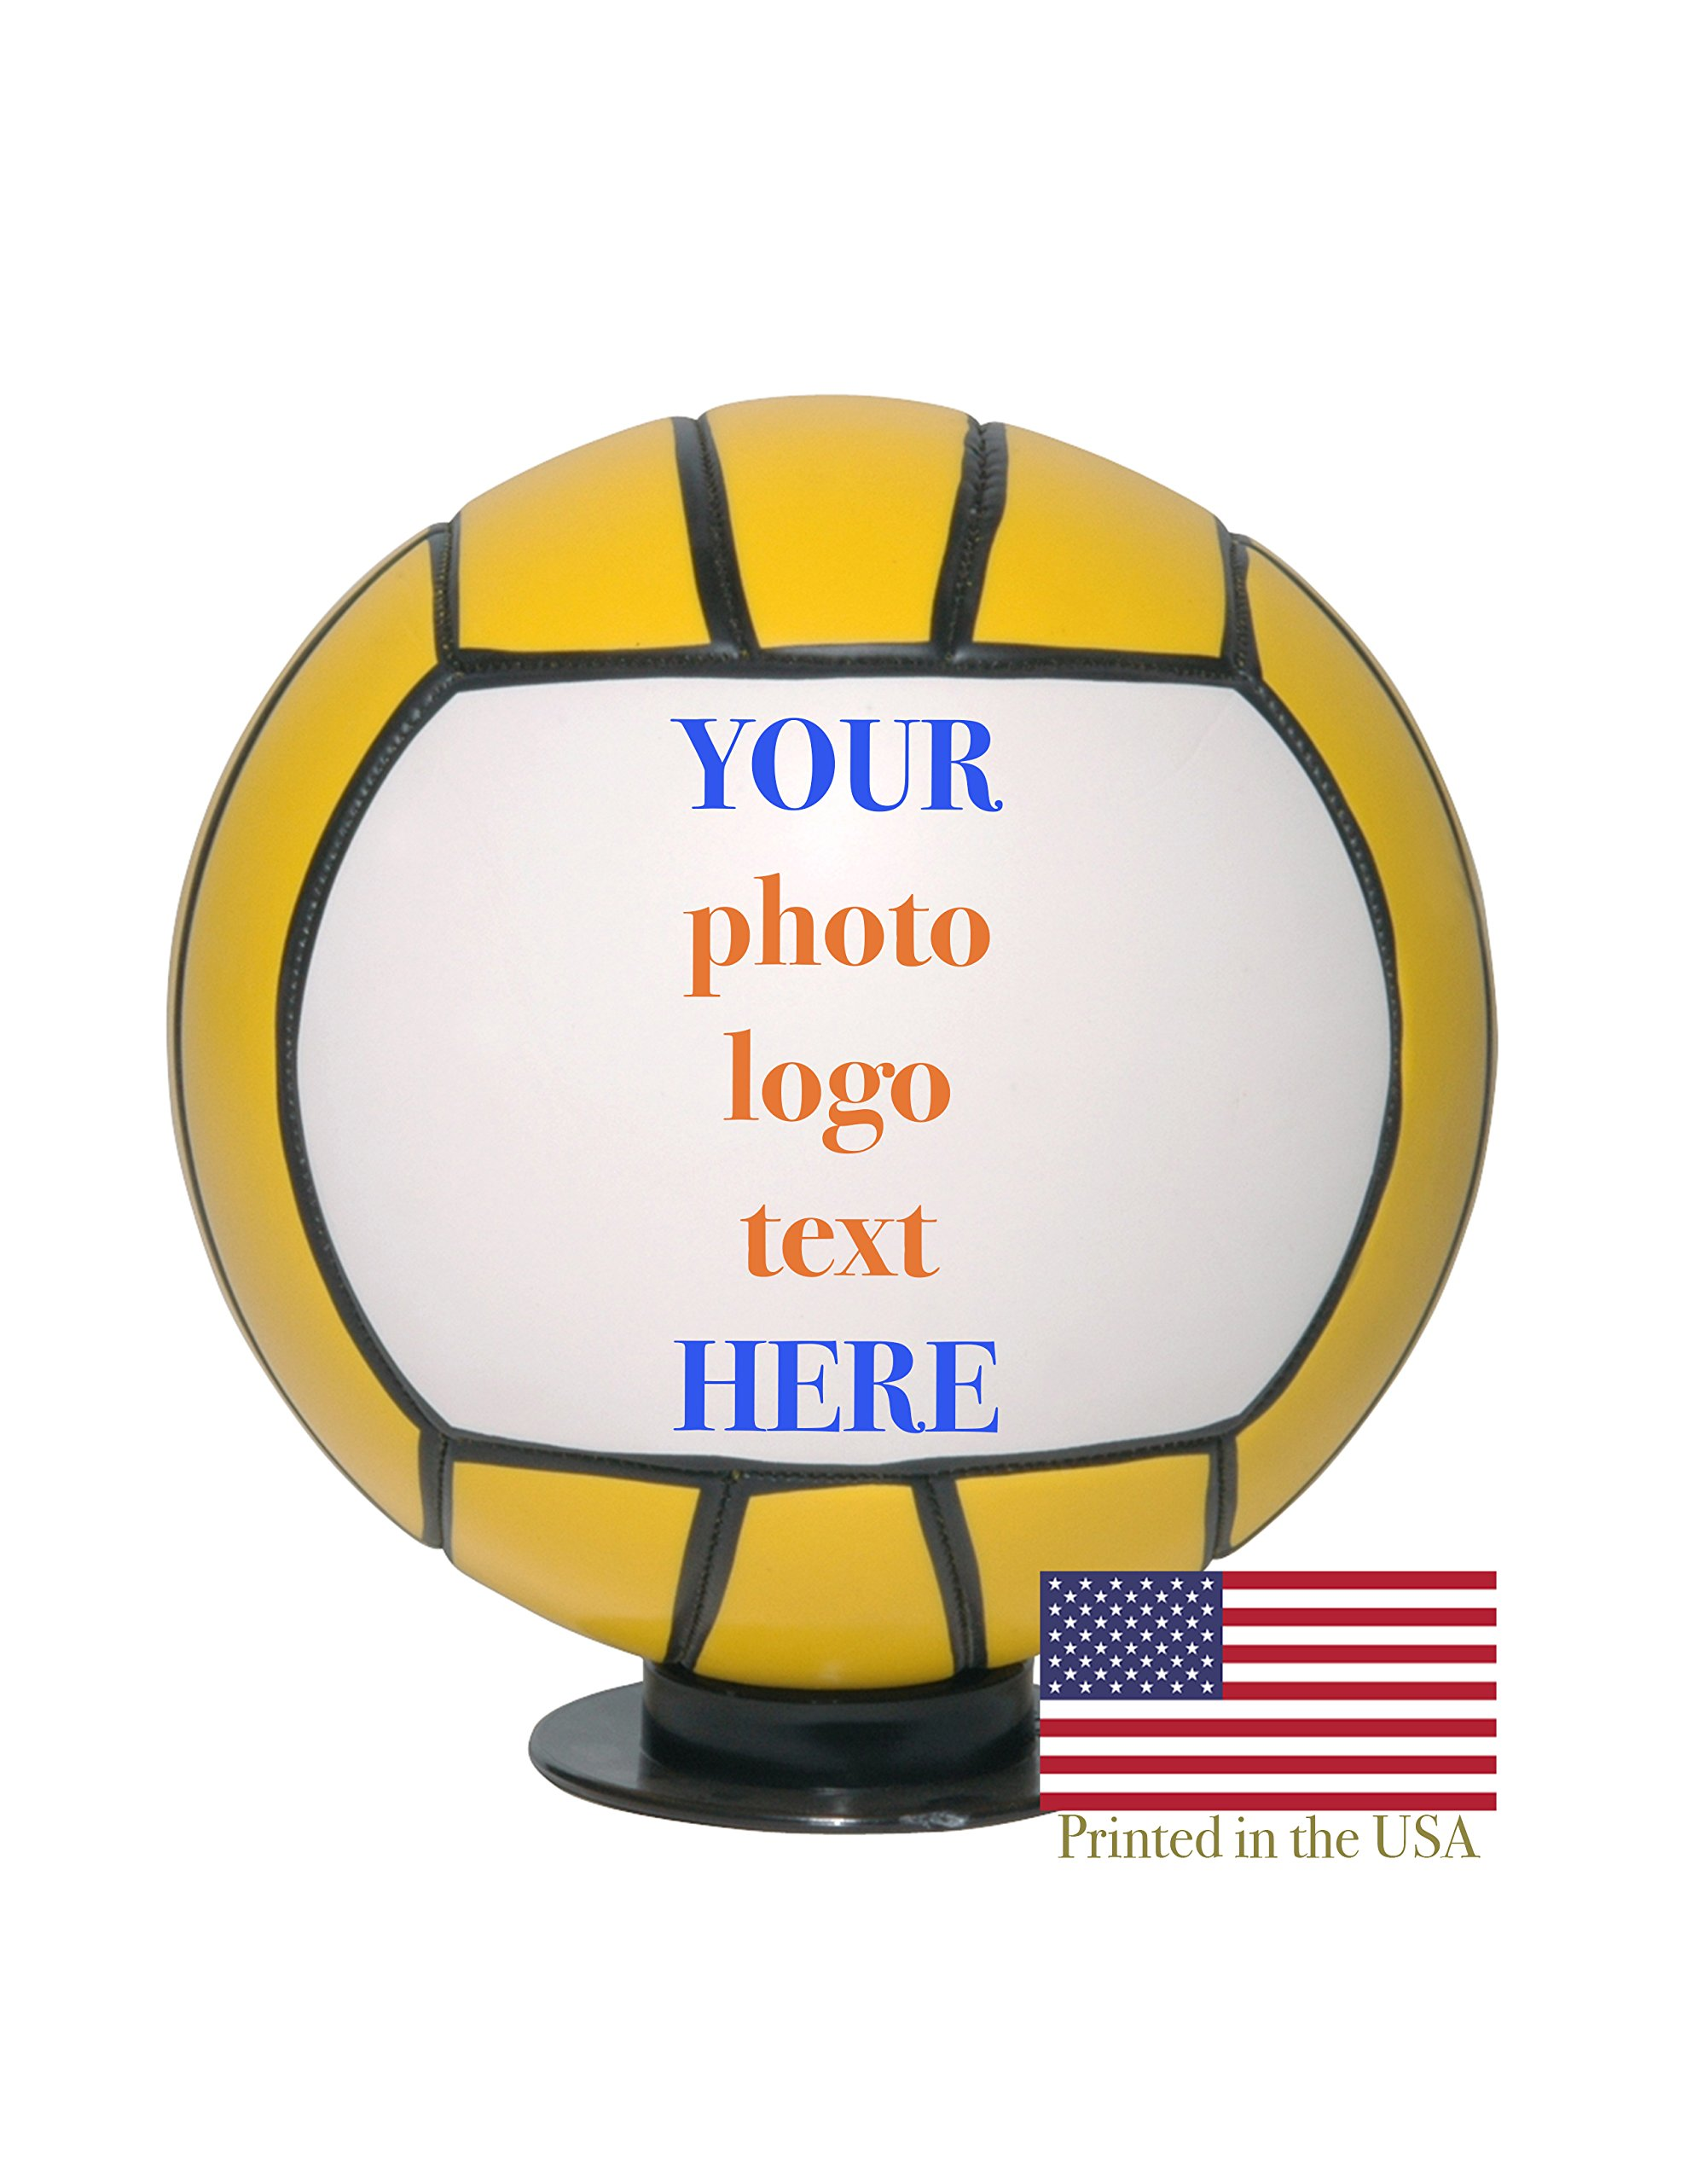 Custom Personalized Water Polo Ball Full Sized 12 Inch Regulation Ball Ships Next Day, High Resolution Photos, Logos & Text on Balls Trophies, Personalized Gifts